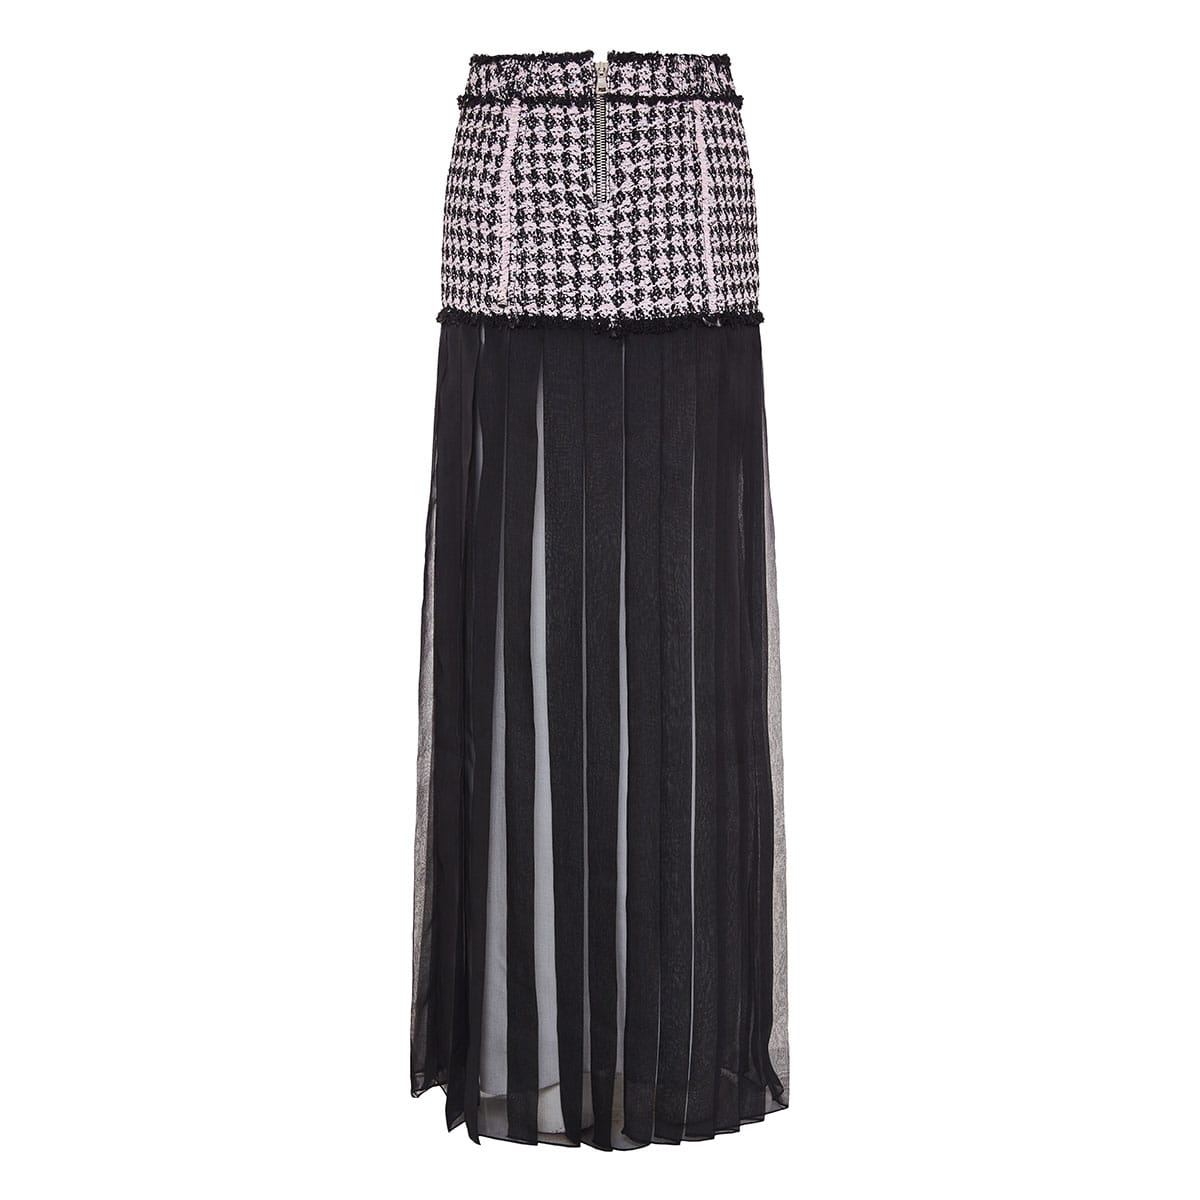 Long sheer pleated skirt with tweed